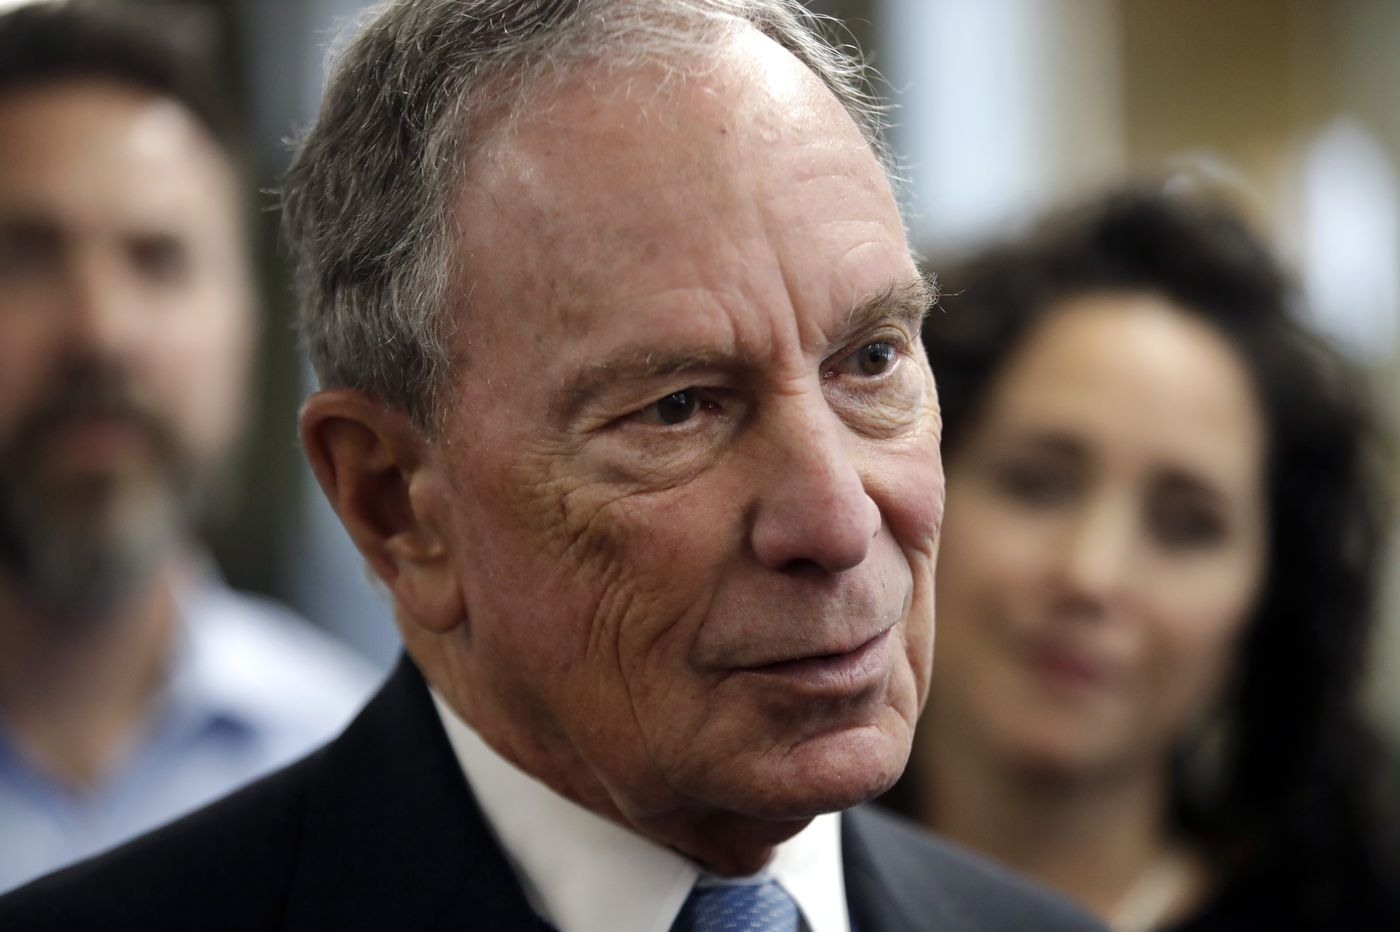 Michael Bloomberg helped two Republicans win big Pennsylvania elections. Now he wants the Democratic nomination for president.